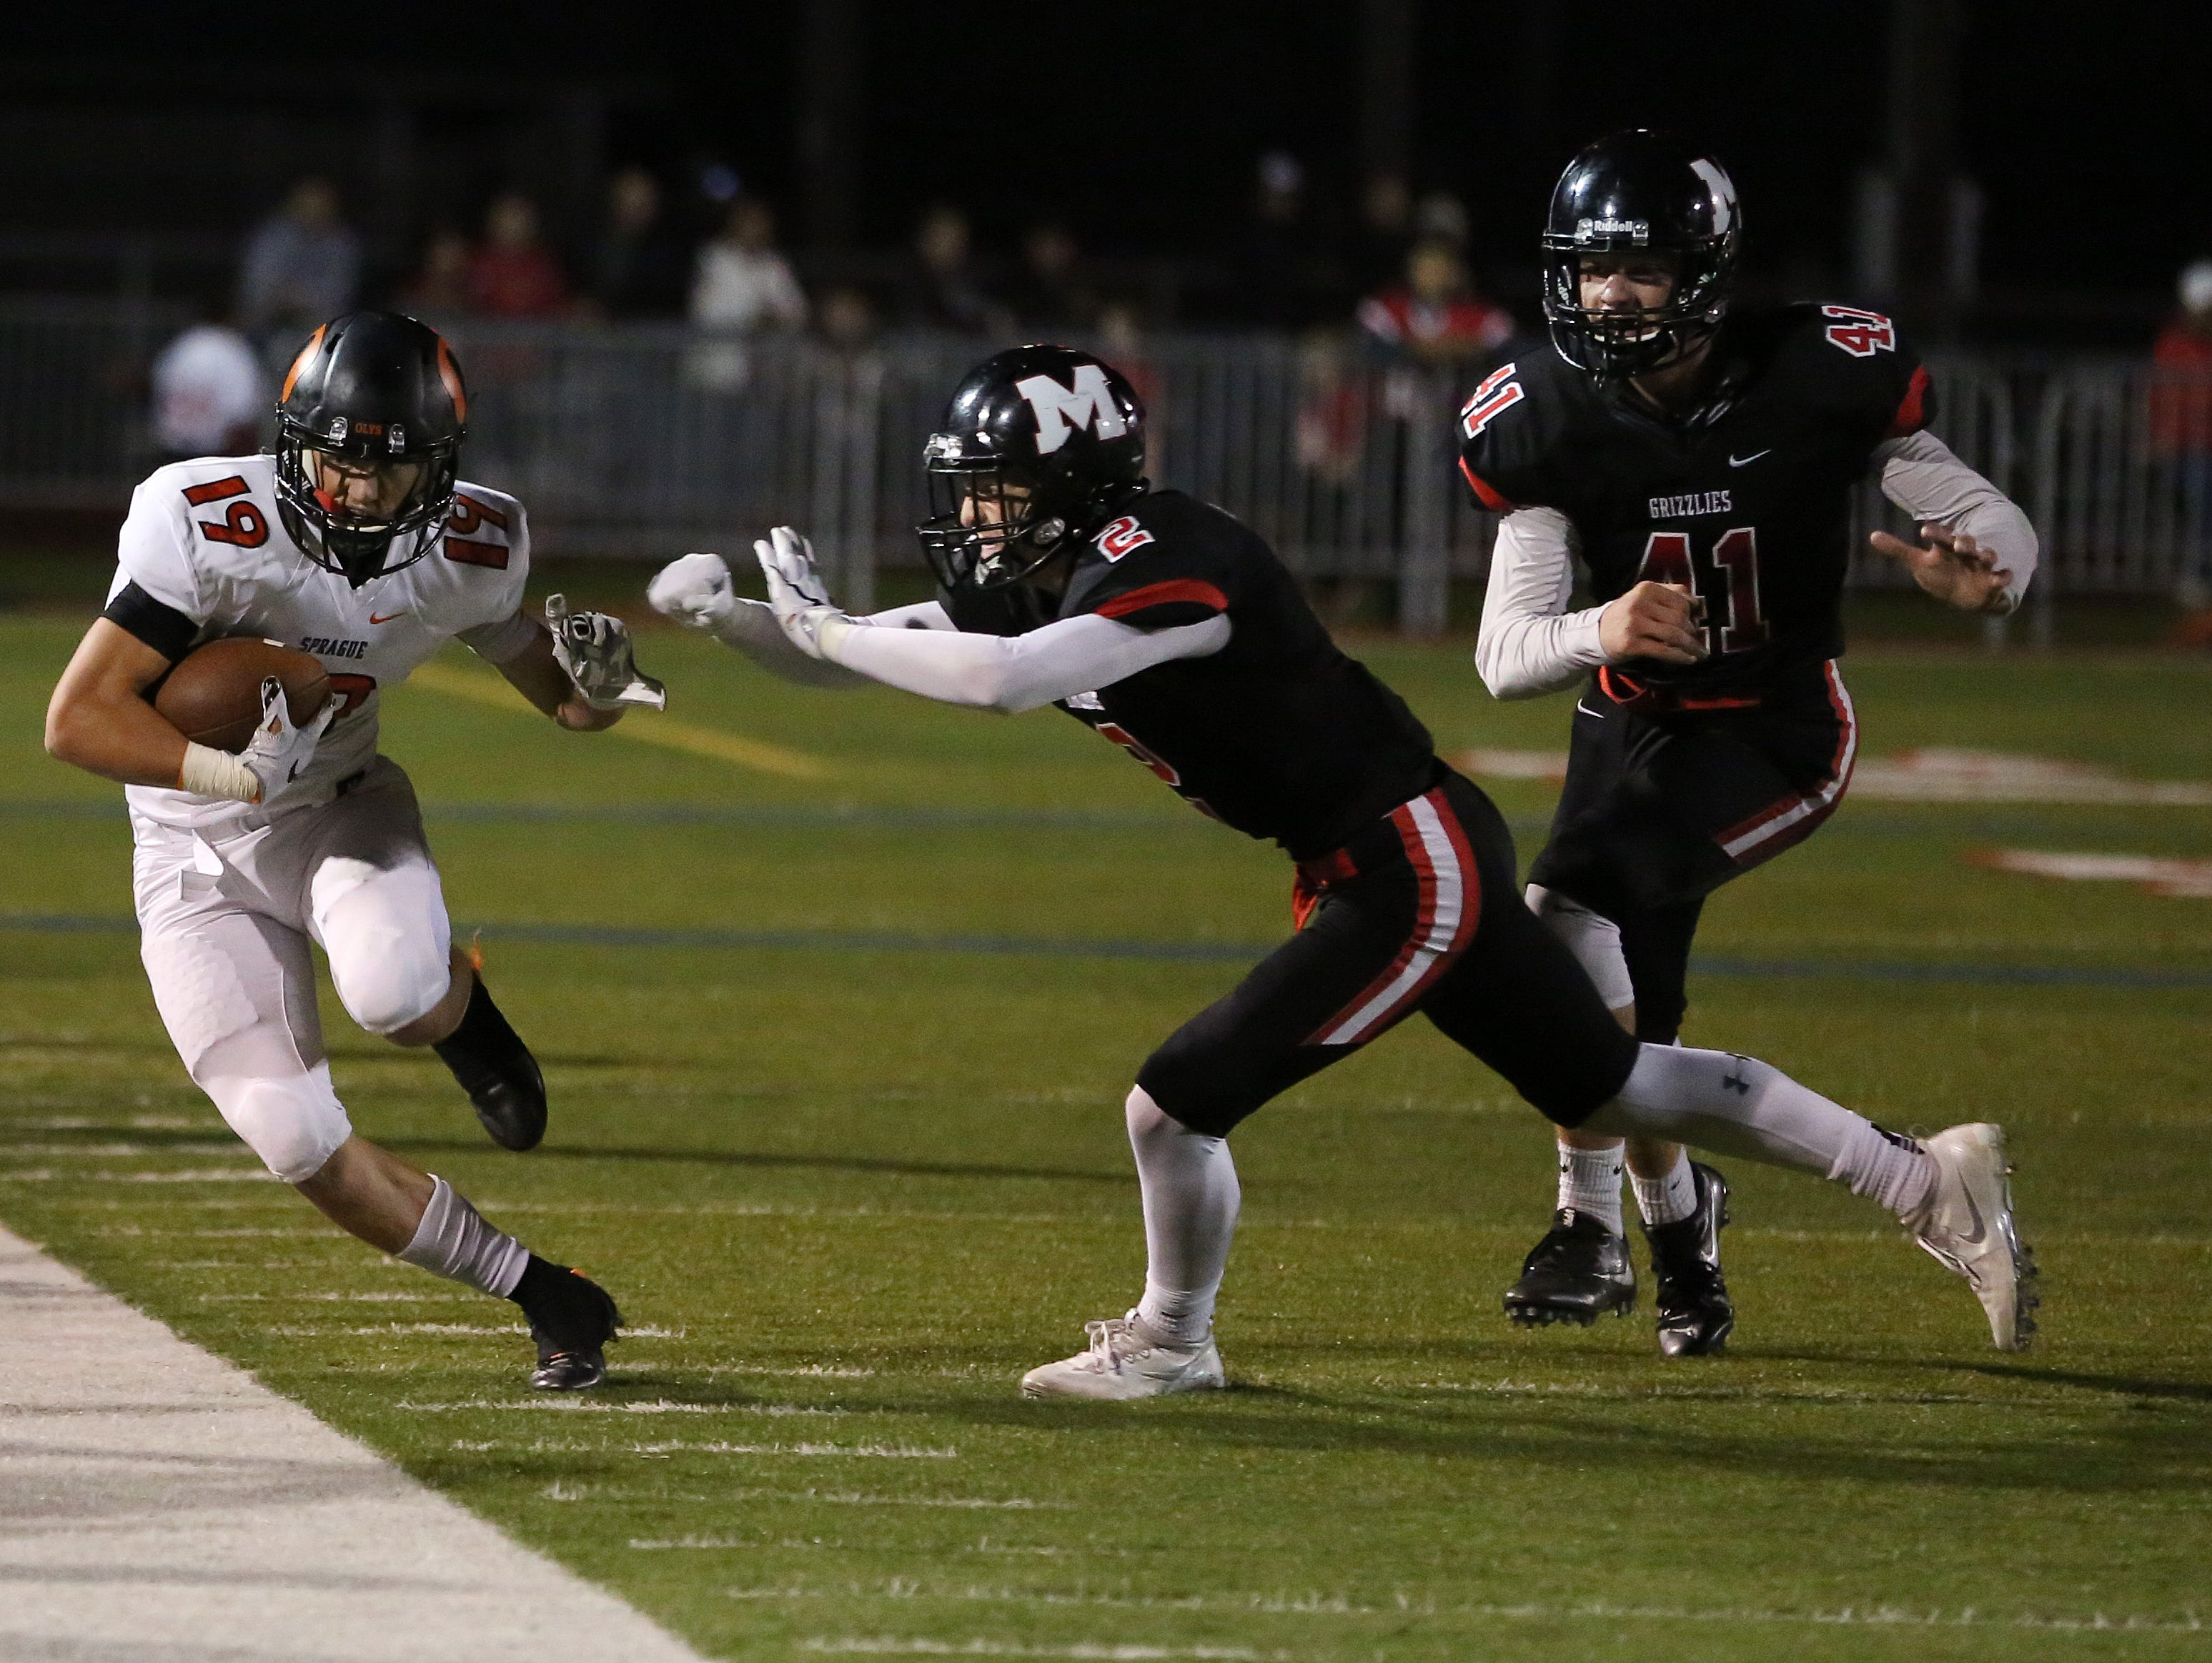 Sprague's Alek Altringer runs the ball as Olys defeat the McMinnville Grizzlies 49-27 in Greater Valley Conference game on Friday, Sept. 23, 2016, in McMinnville.